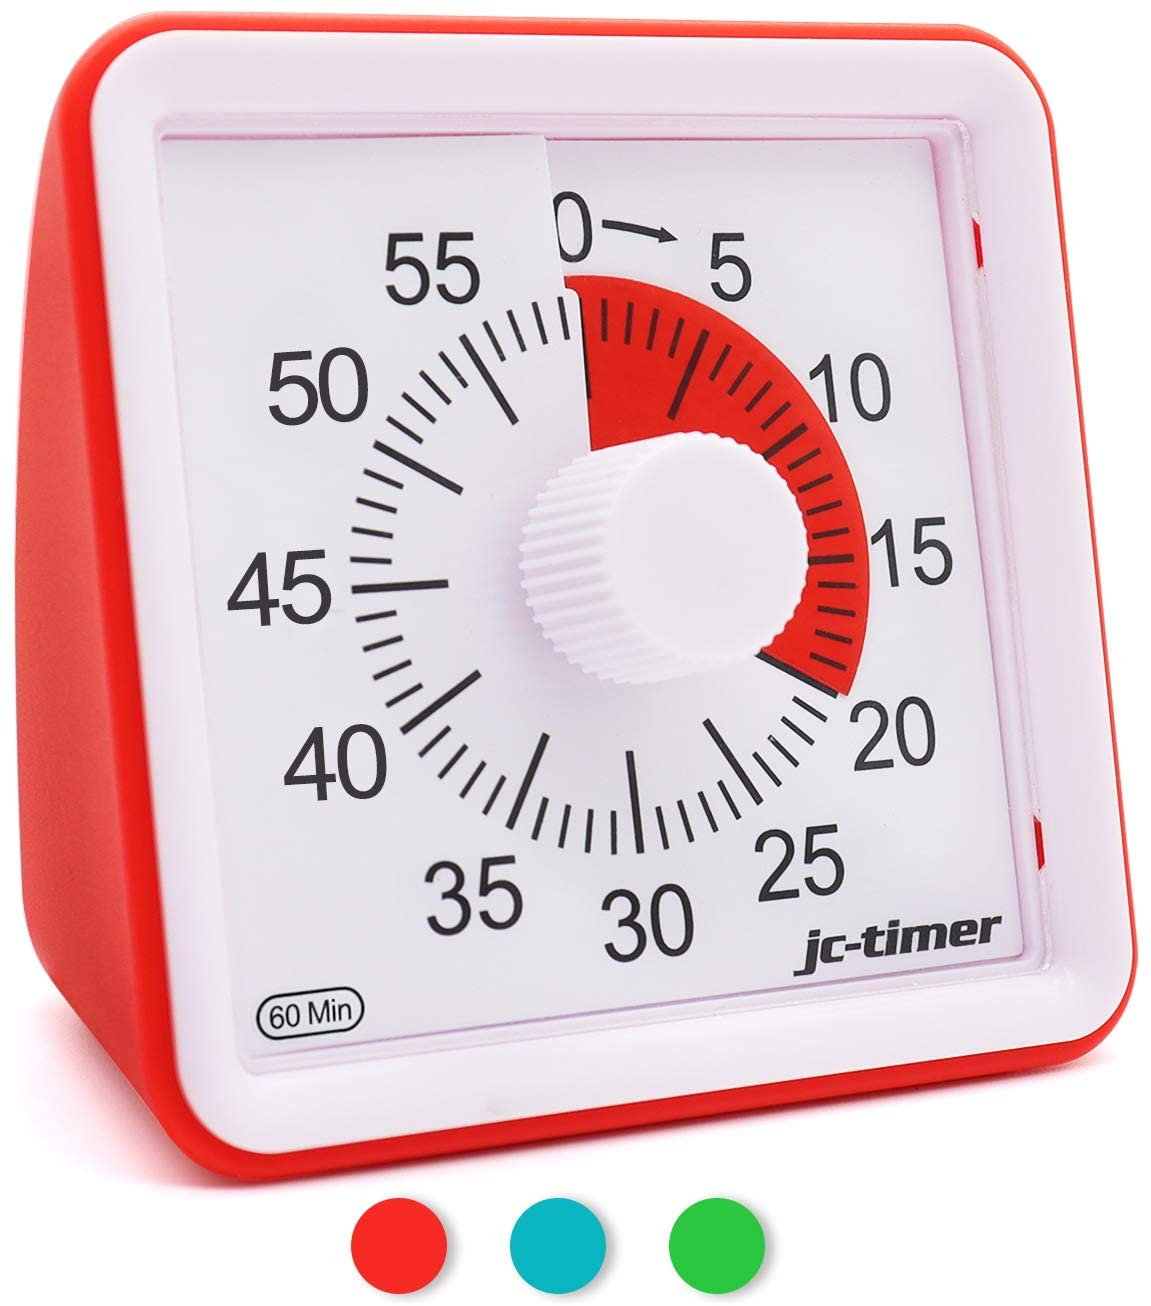 Koopro 60-Minute Visual Timer Mute Countdown Alarm Clock for Housework Homework Silent Time Management Tool for Kids and Adults Accurate Time Counter for Cooking Reading Cooking Meeting (Red)